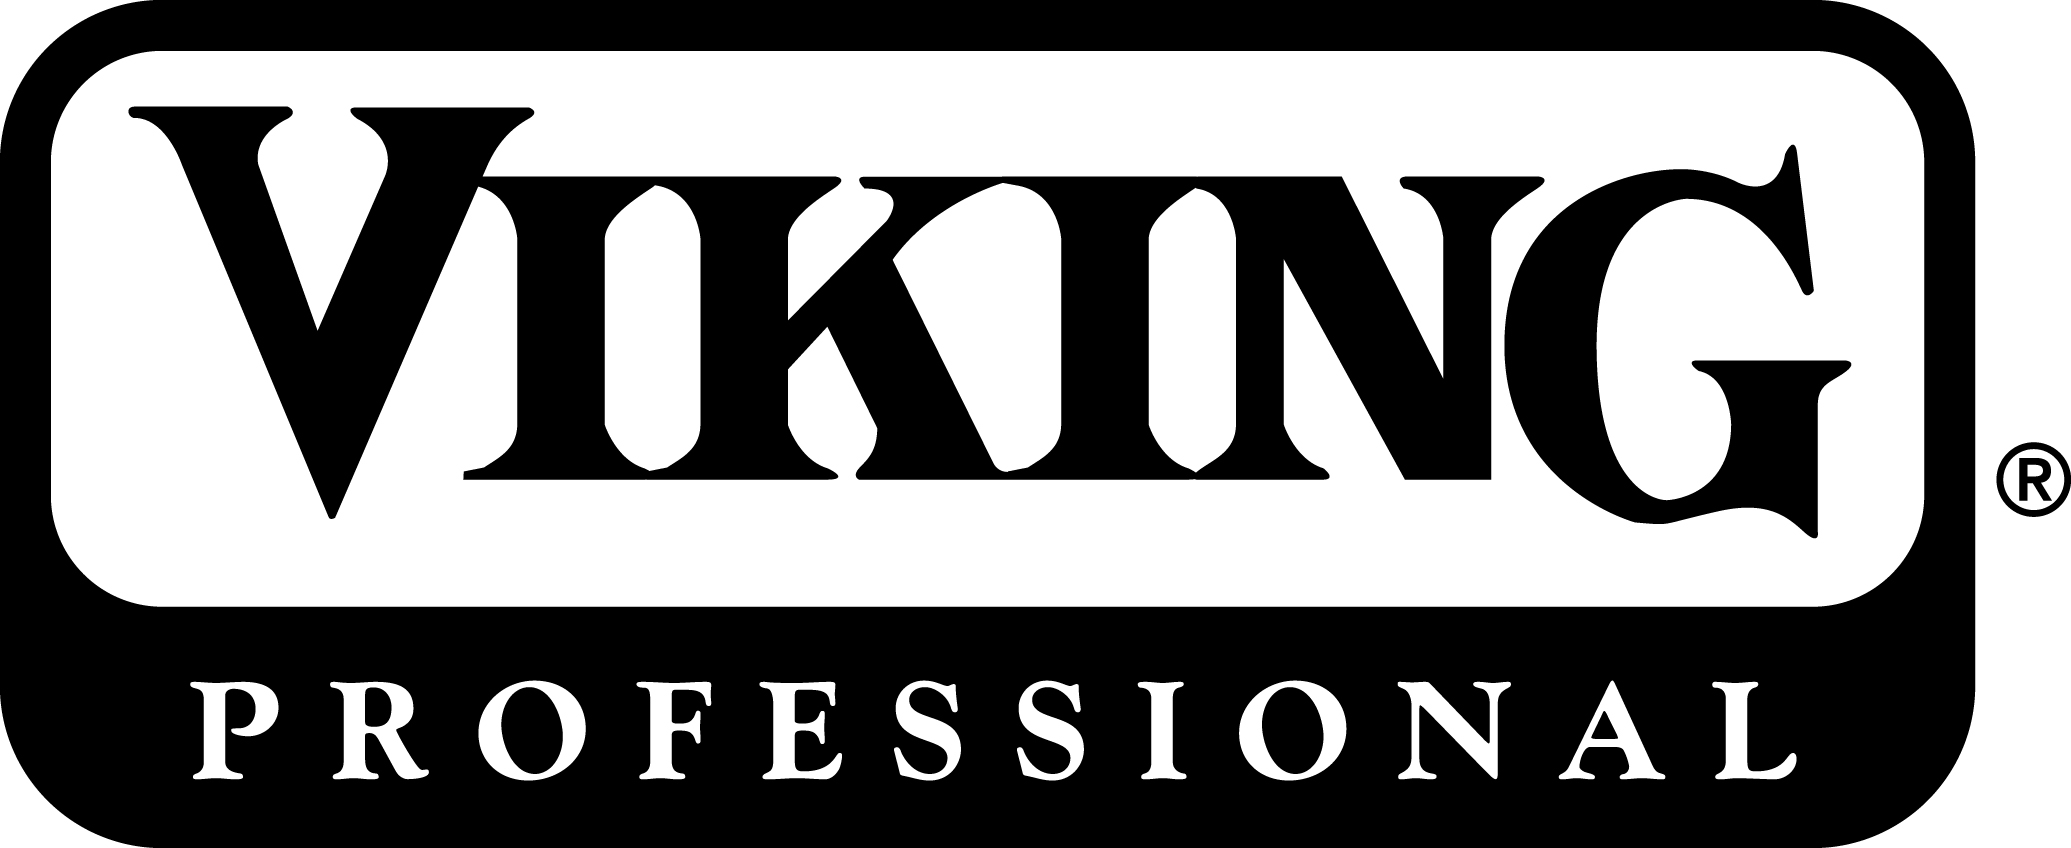 Viking Fix My Fridge Near Me, Kenmore Fridge Repair